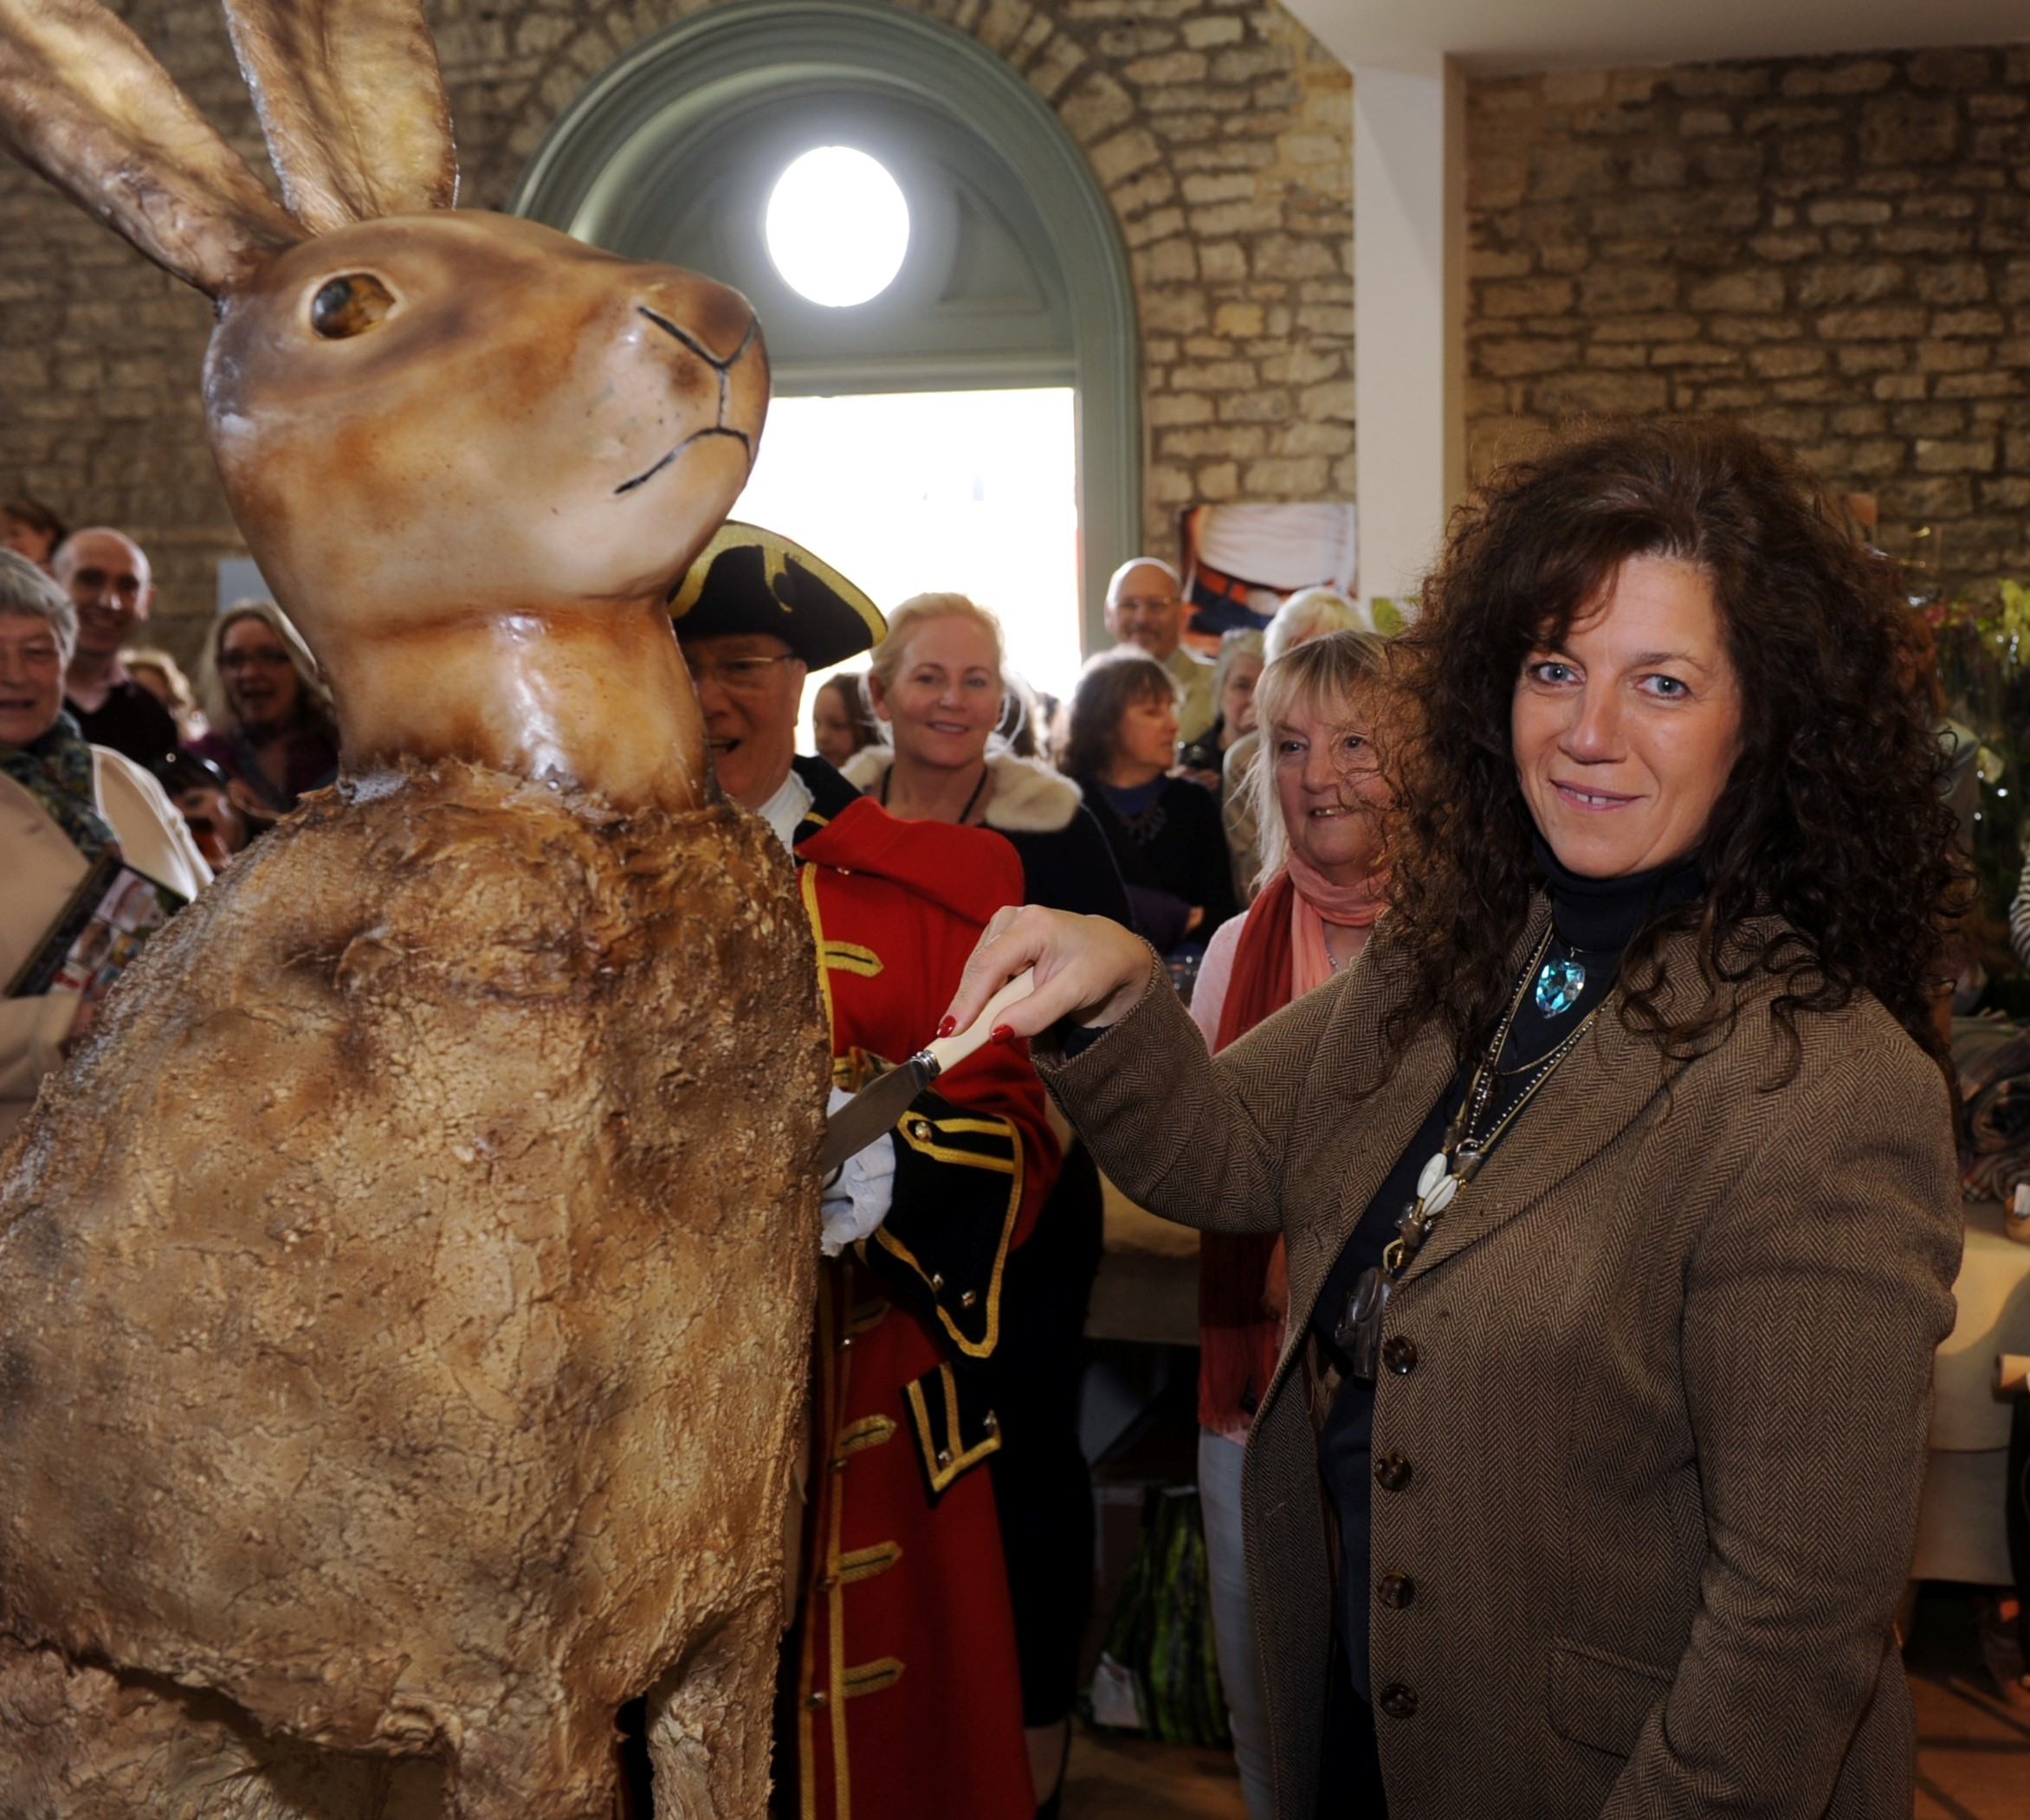 Hare festival springs into Cirencester